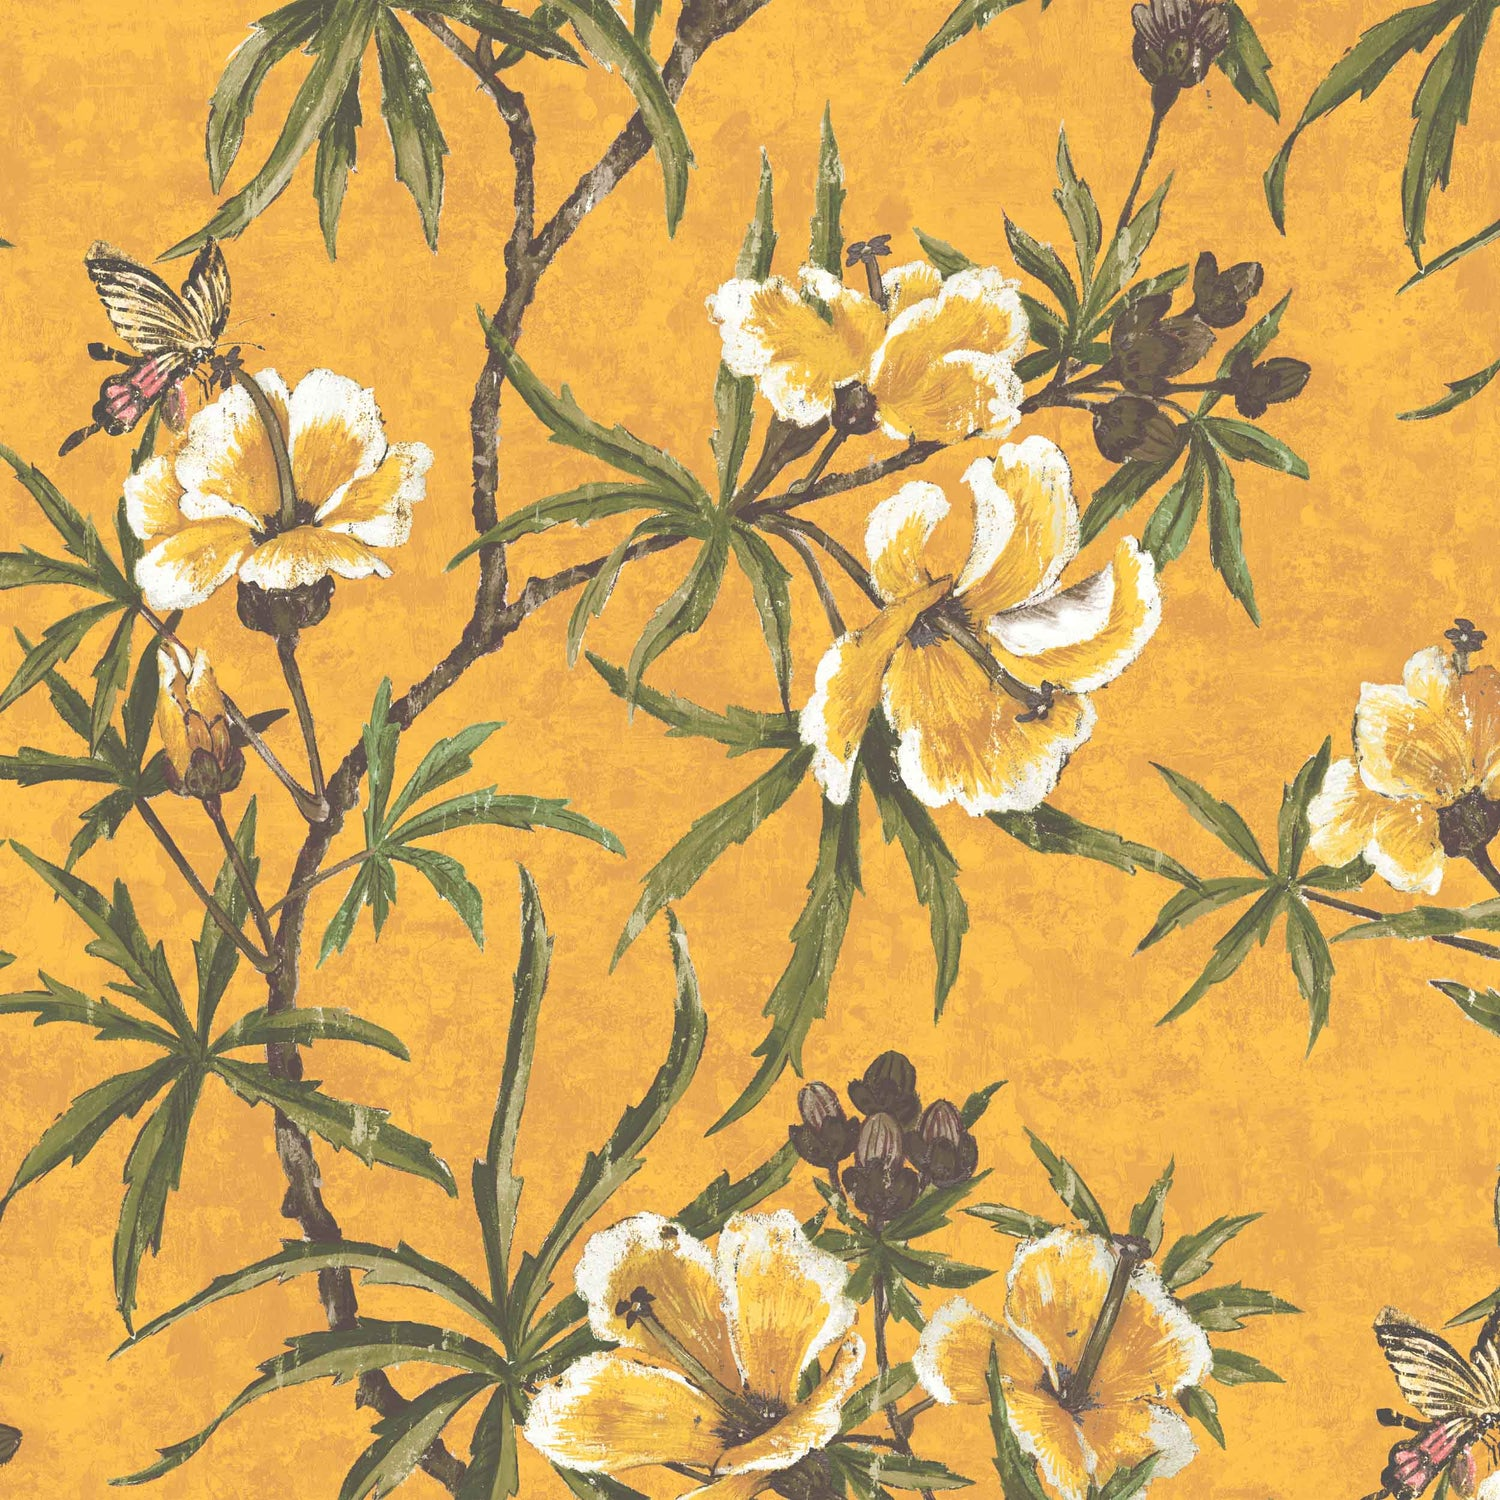 Zen in Imperial Yellow by Woodchip & Magnolia